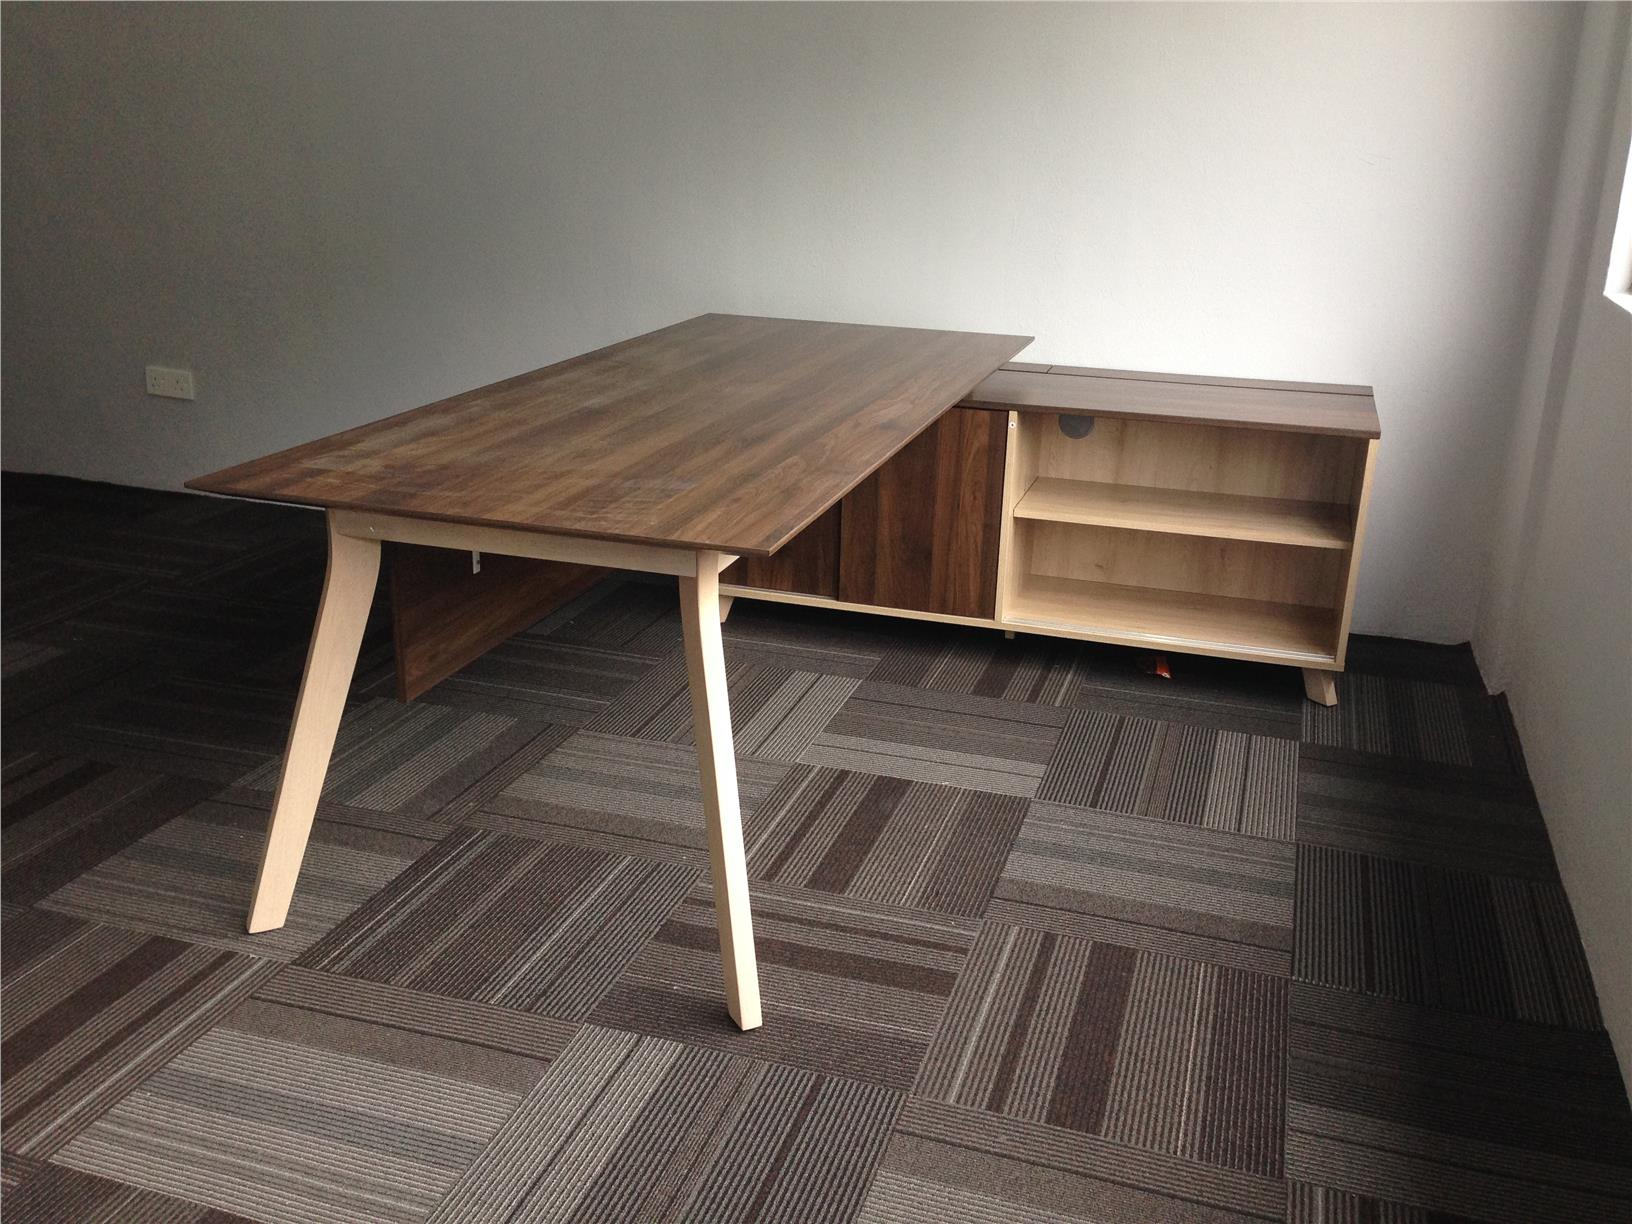 EXECUTIVE TABLE WITH SIDE CABINET